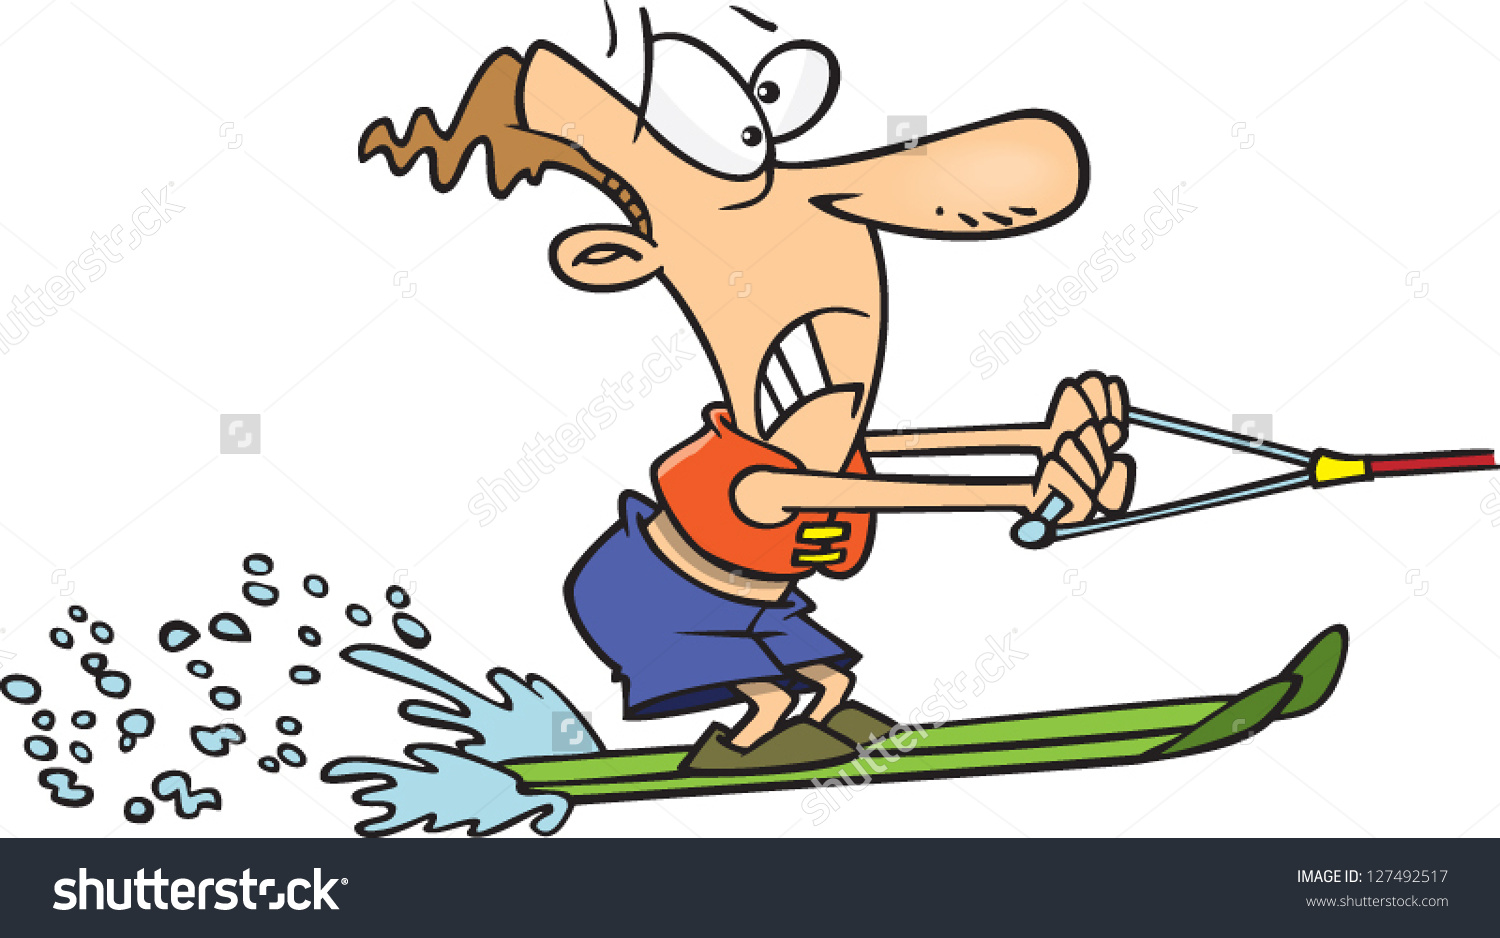 Water ski clipart without person.